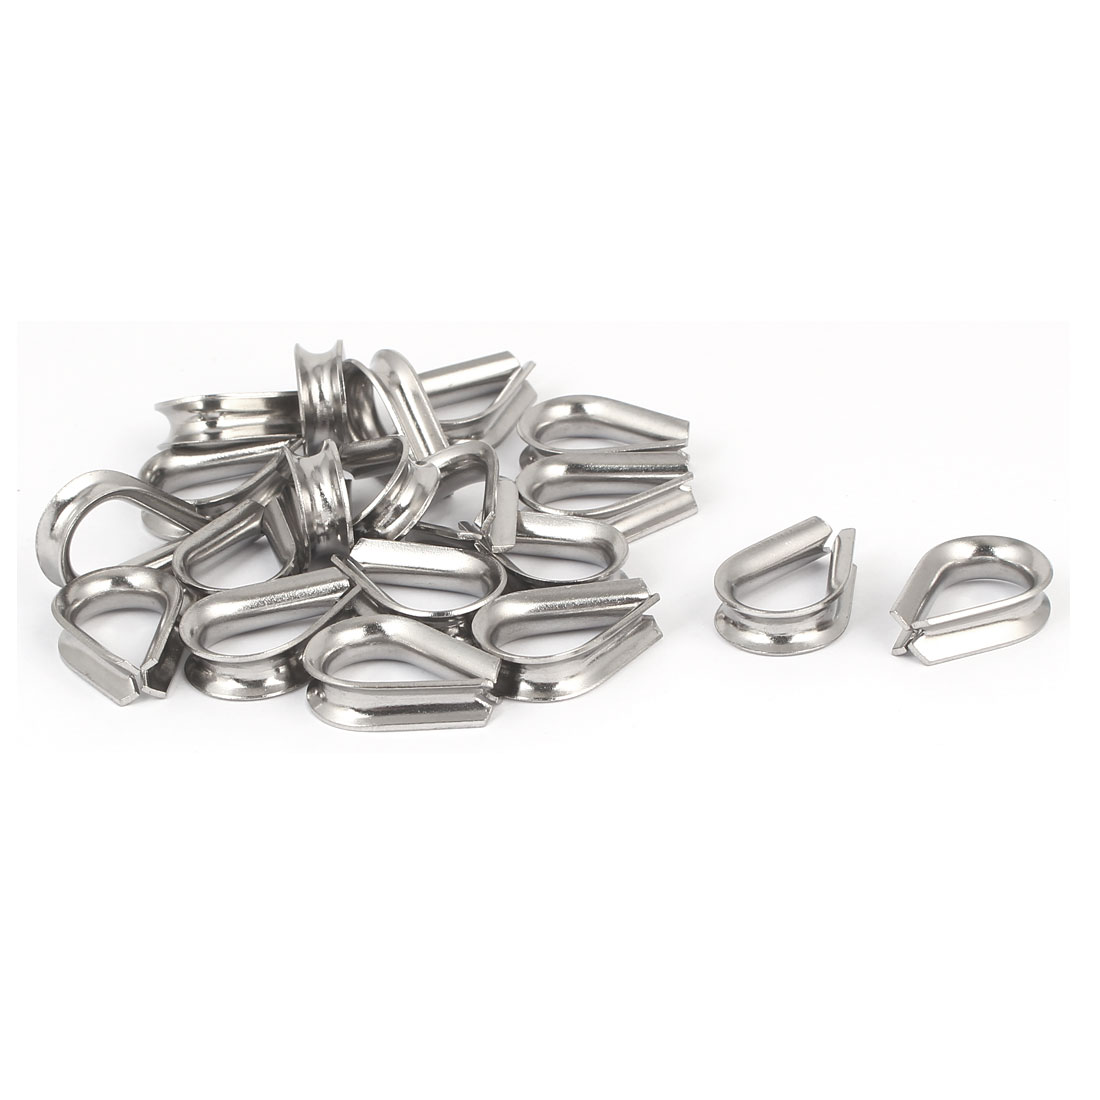 Rigging Hardware 304 Stainless Steel M4 Standard Wire Rope Cable Thimble 20pcs